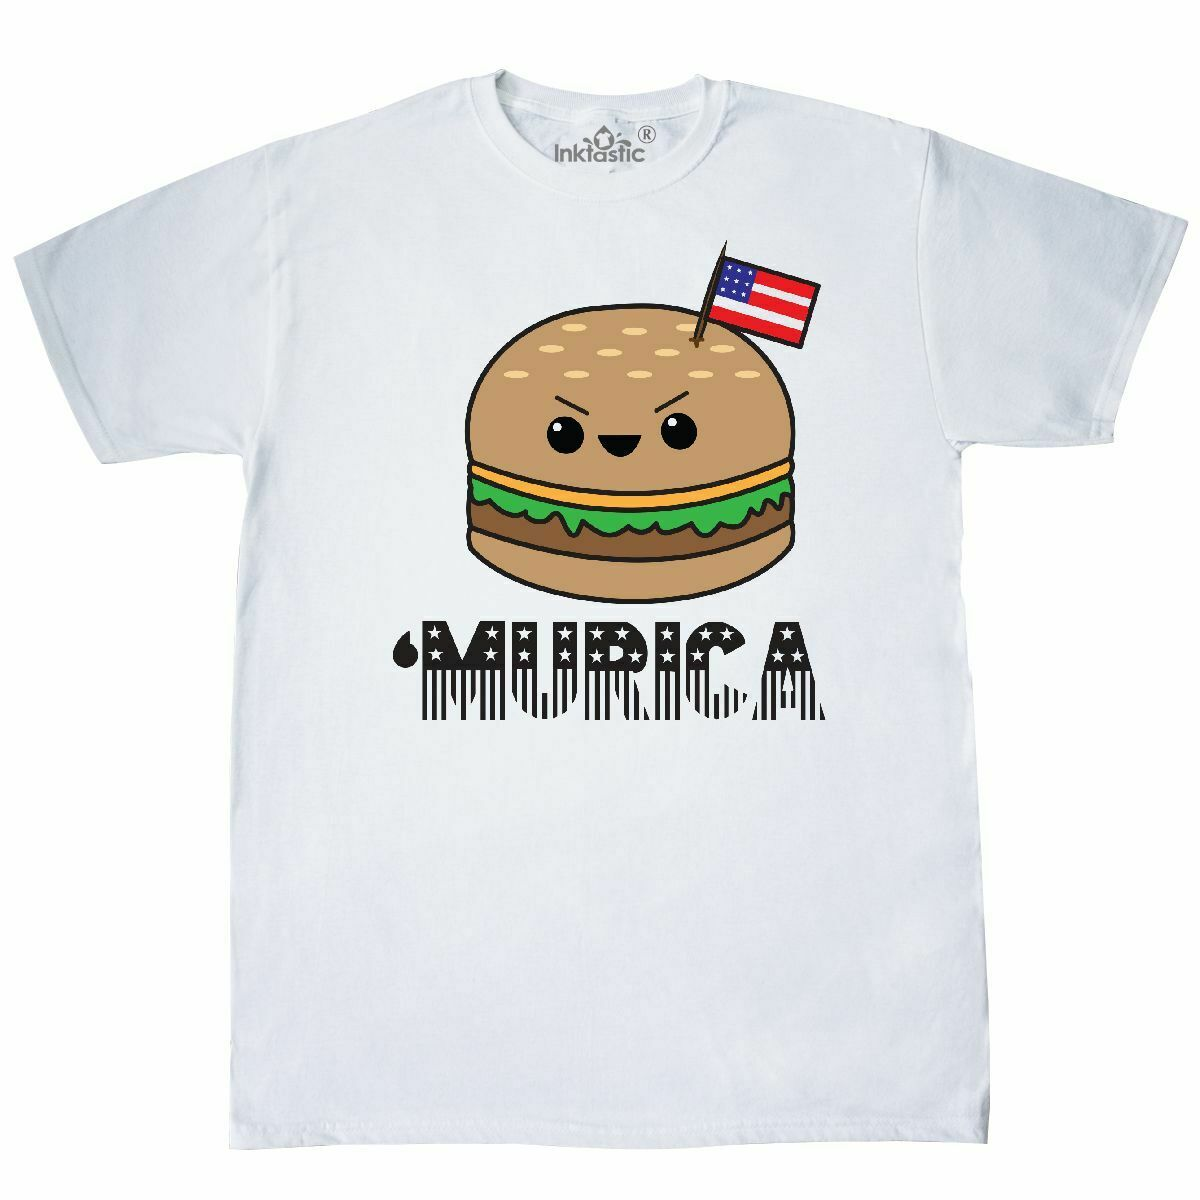 Inktastic 'Murica Burger T-Shirt America Merica Kawaii Tokyo Japan Mens Adult Top Quality 2019 New Brand Men'S image